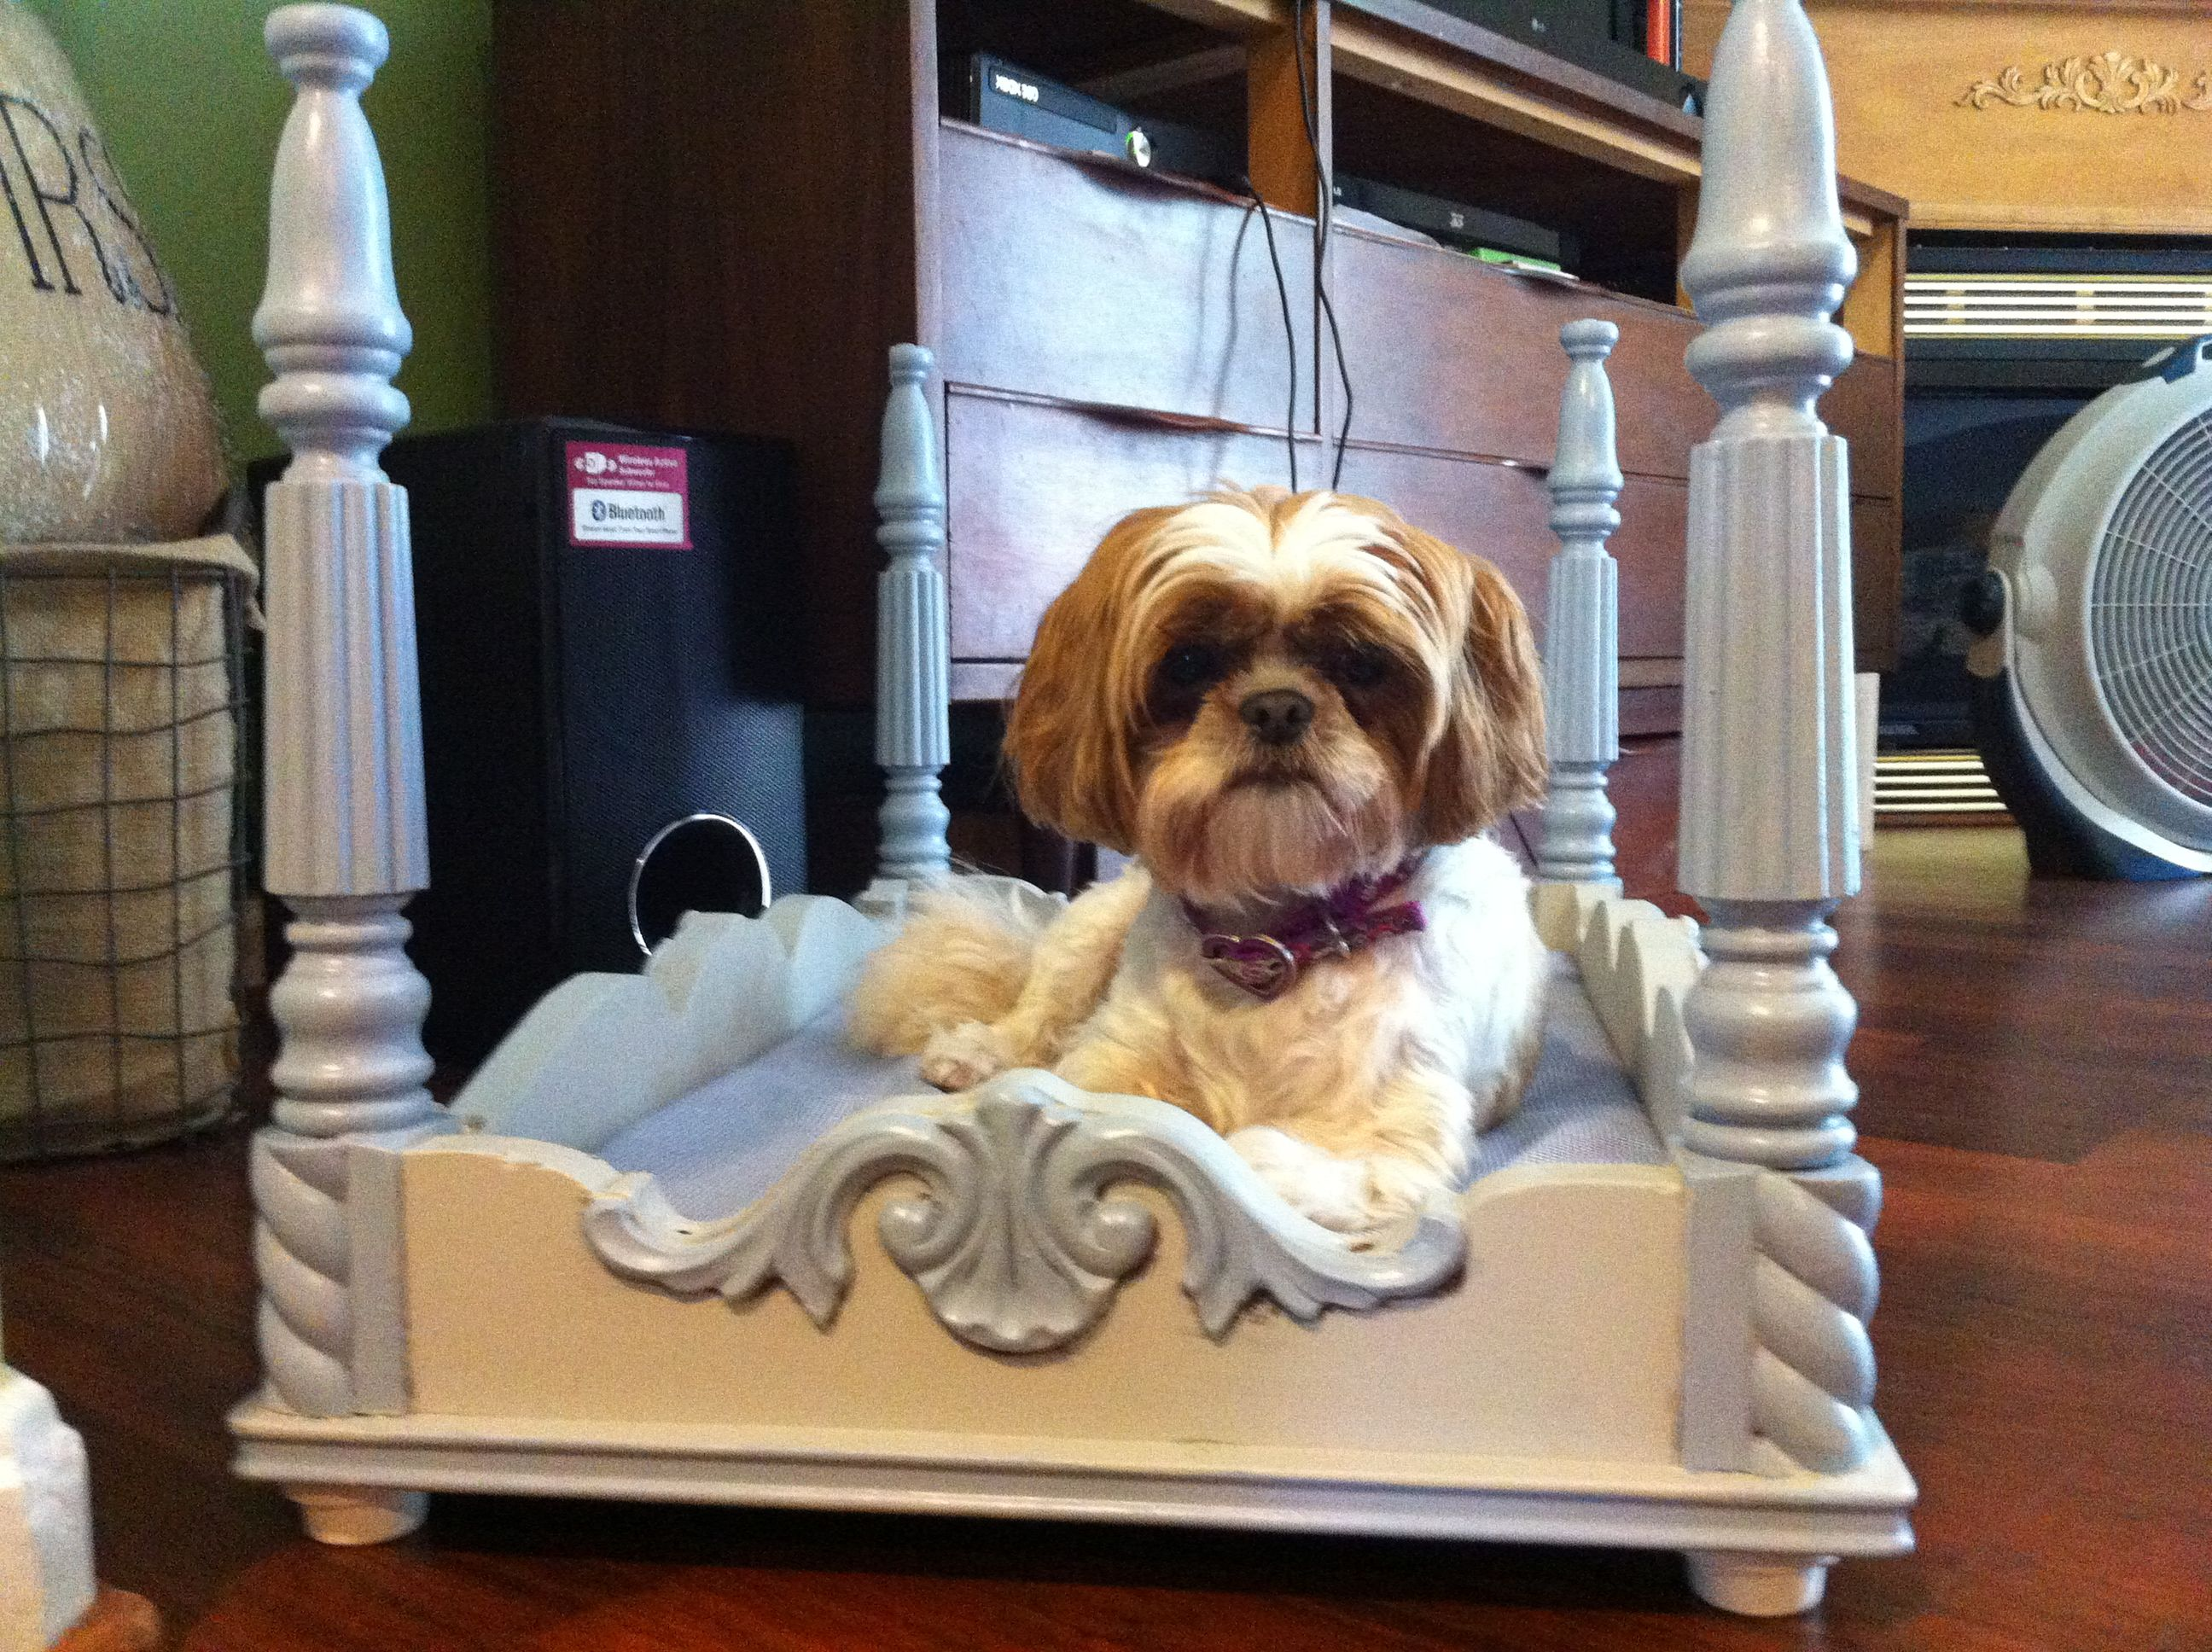 orvis dog crate furniture. Contemporary Dog Orvis Dog Crate Furniture Beds With All About Pets And Get The  Best With Orvis Dog Crate Furniture